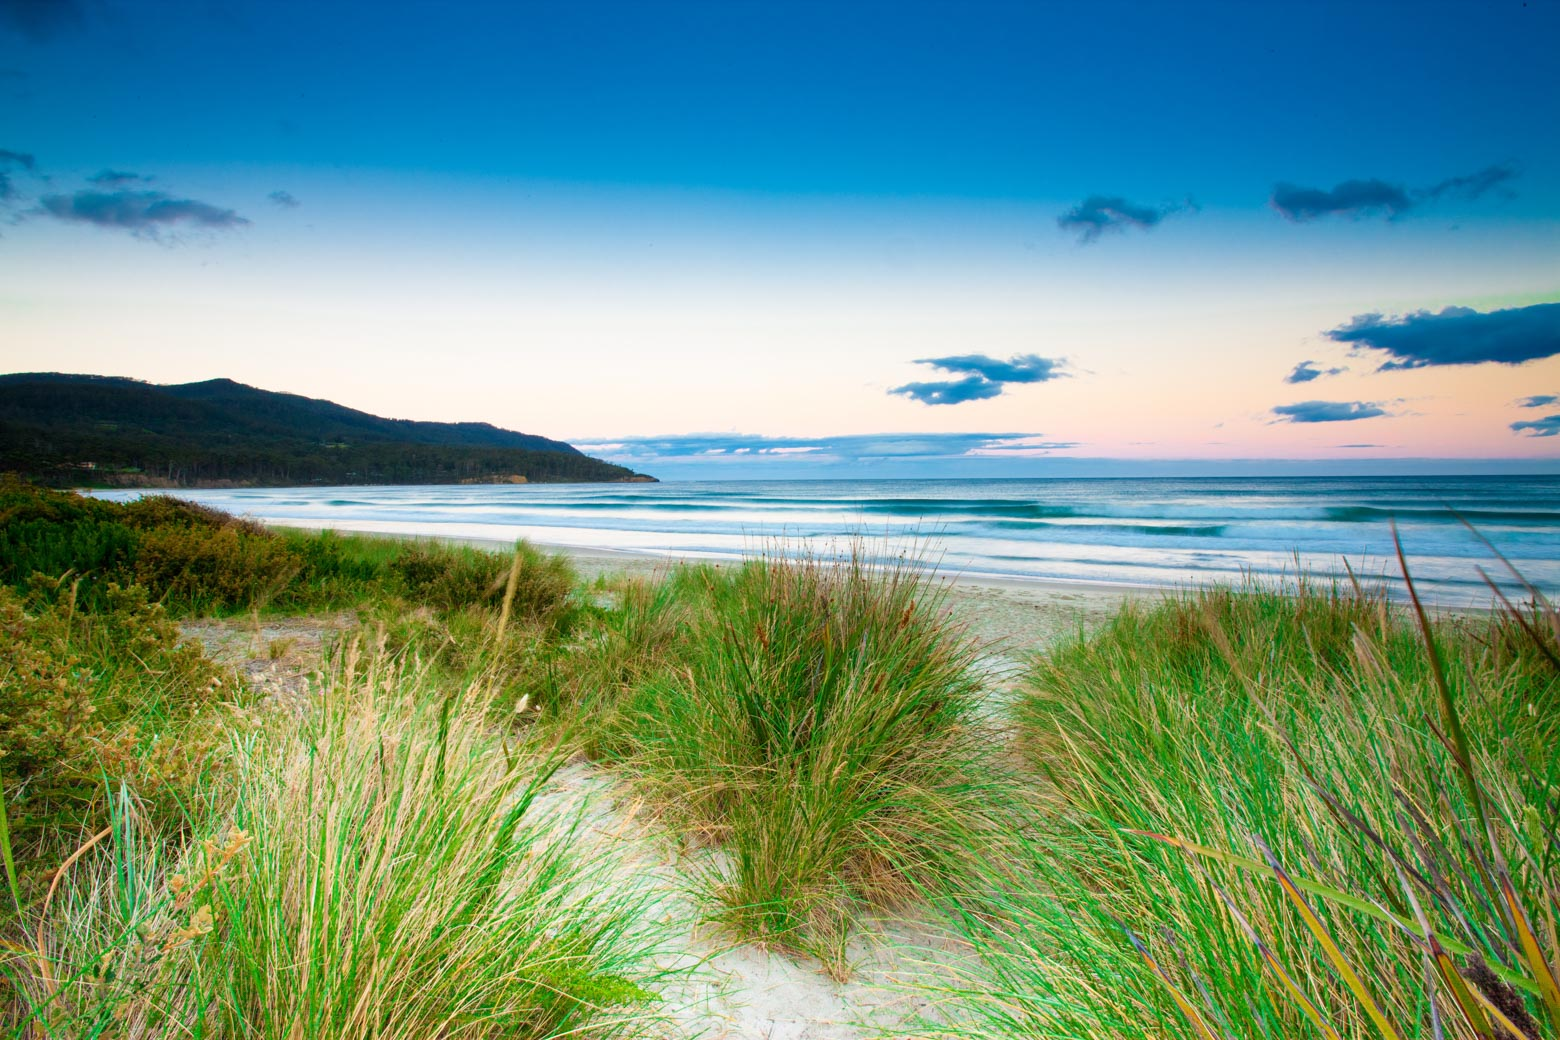 Stop at Eaglehawk Neck beach on your Tasman Peninsula road trip